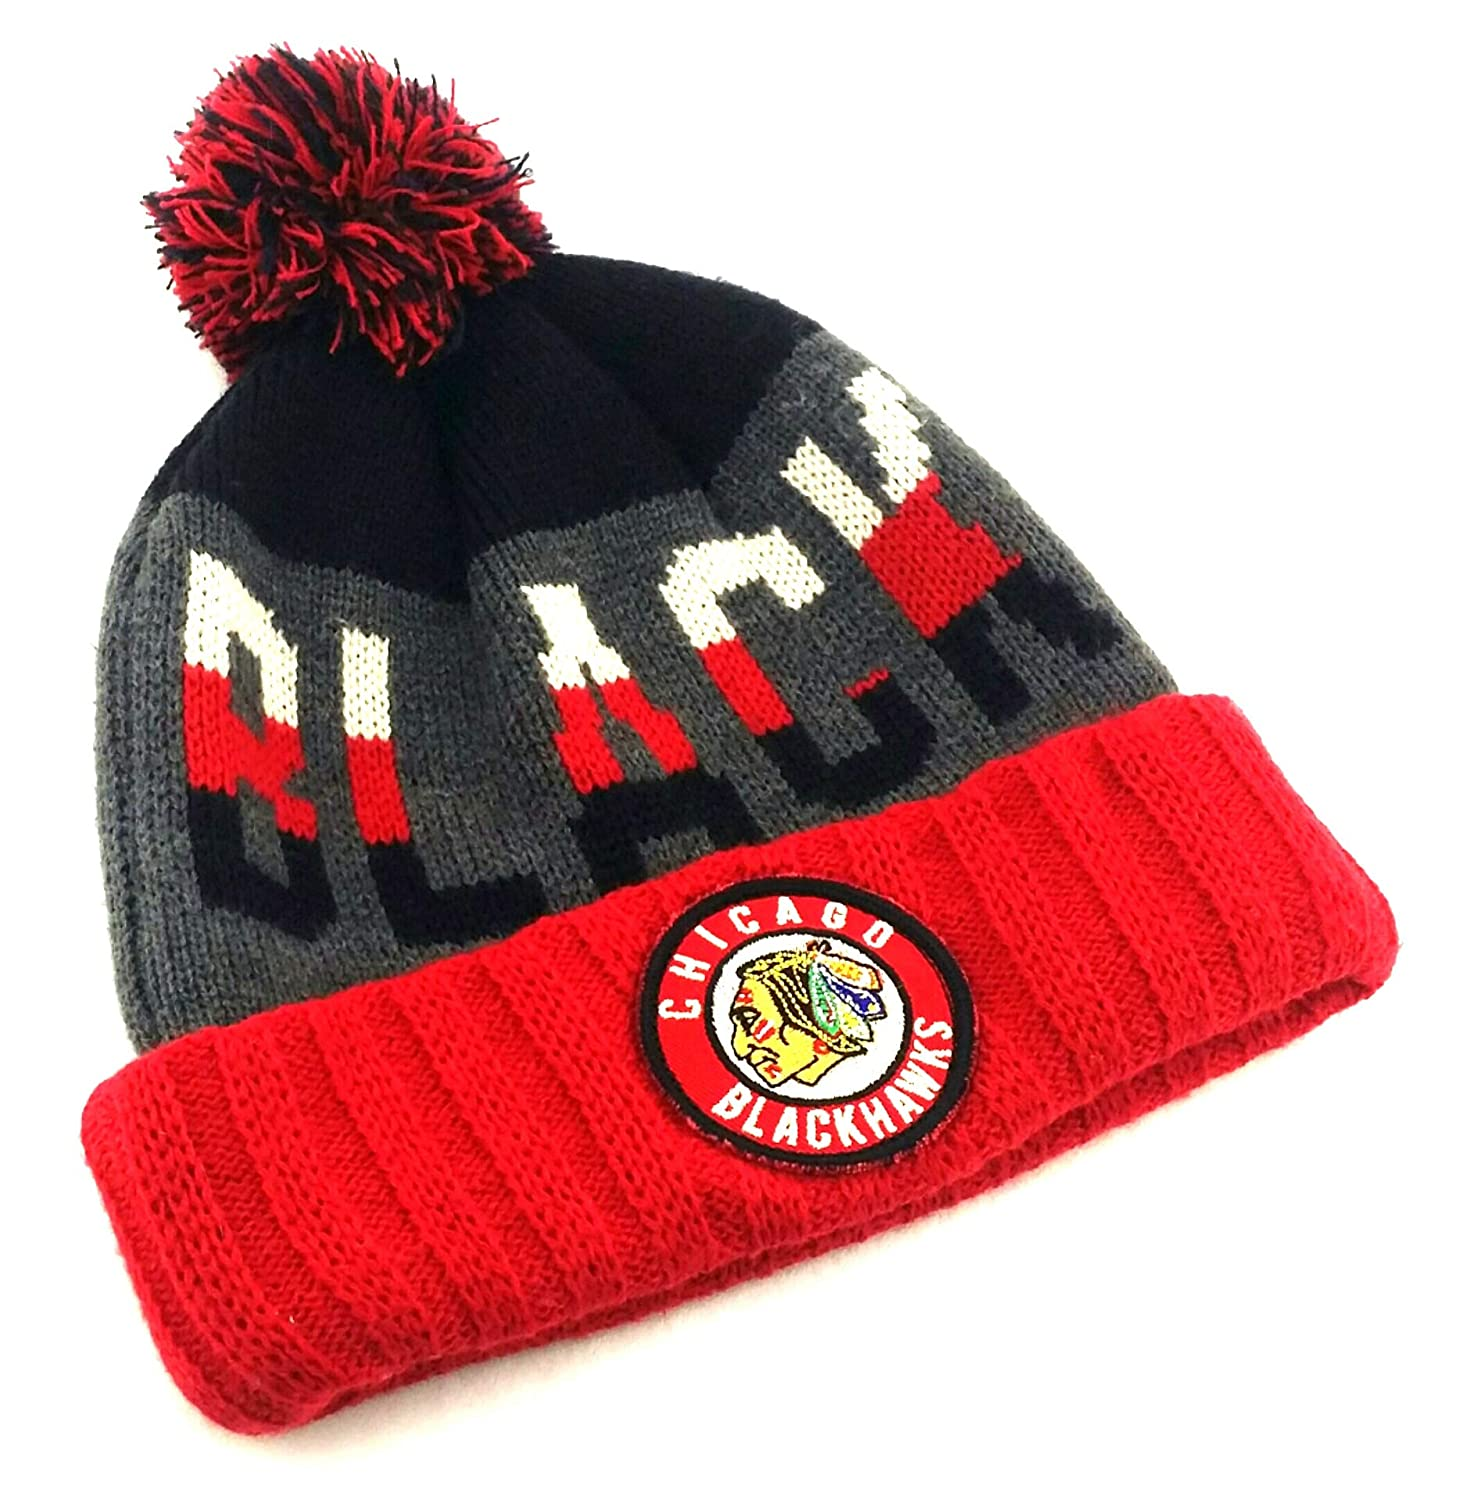 superior quality bb070 00b76 Amazon.com   American Needle Chicago Blackhawks New Vintage Toque Knit Red  Black Gray Era Beanie Hat Cap   Sports   Outdoors